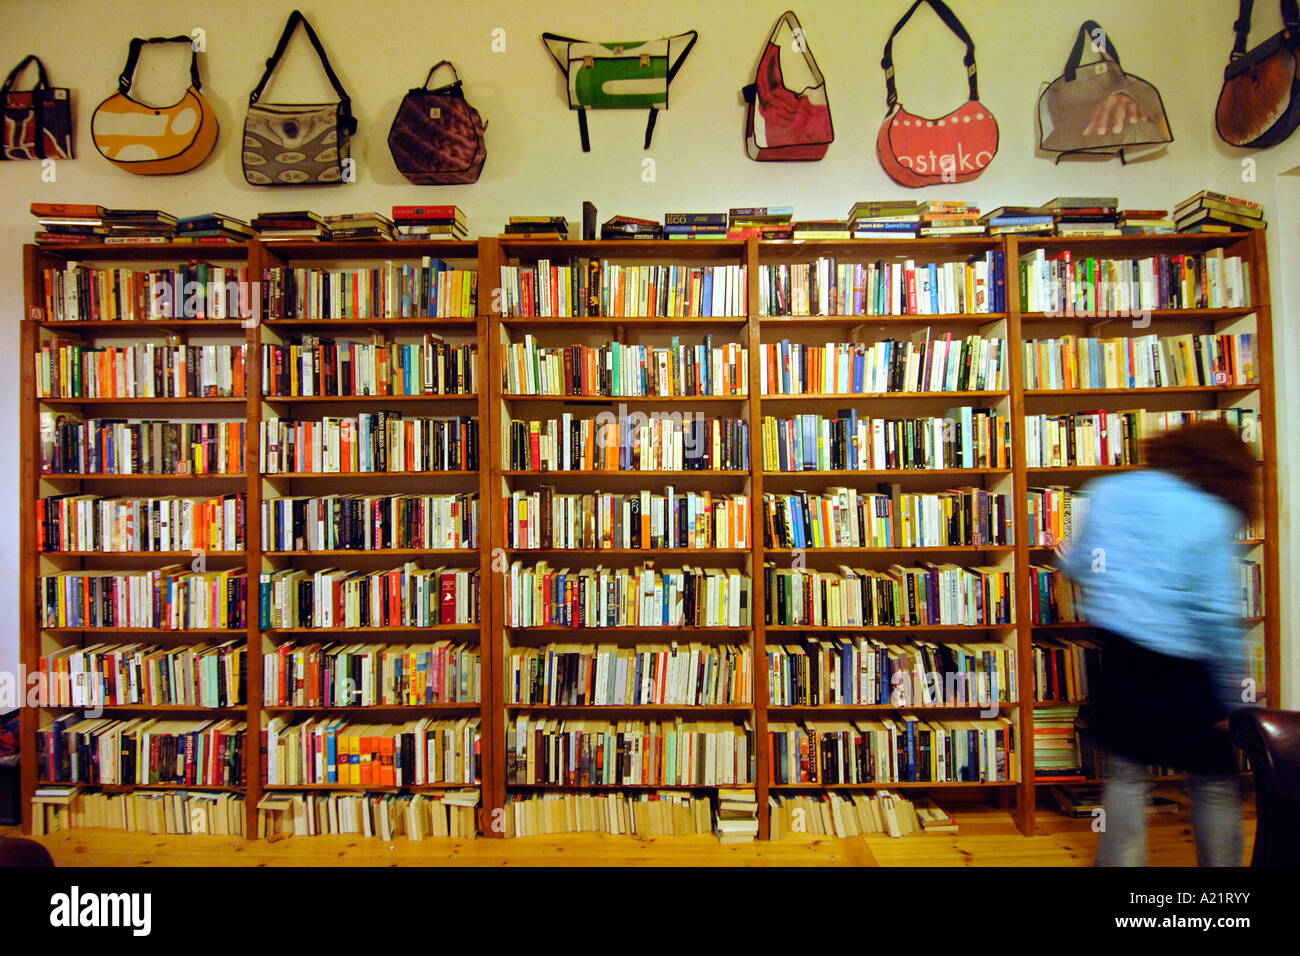 Interior of the St Georges English Bookshop in East Berlin. - Stock Image